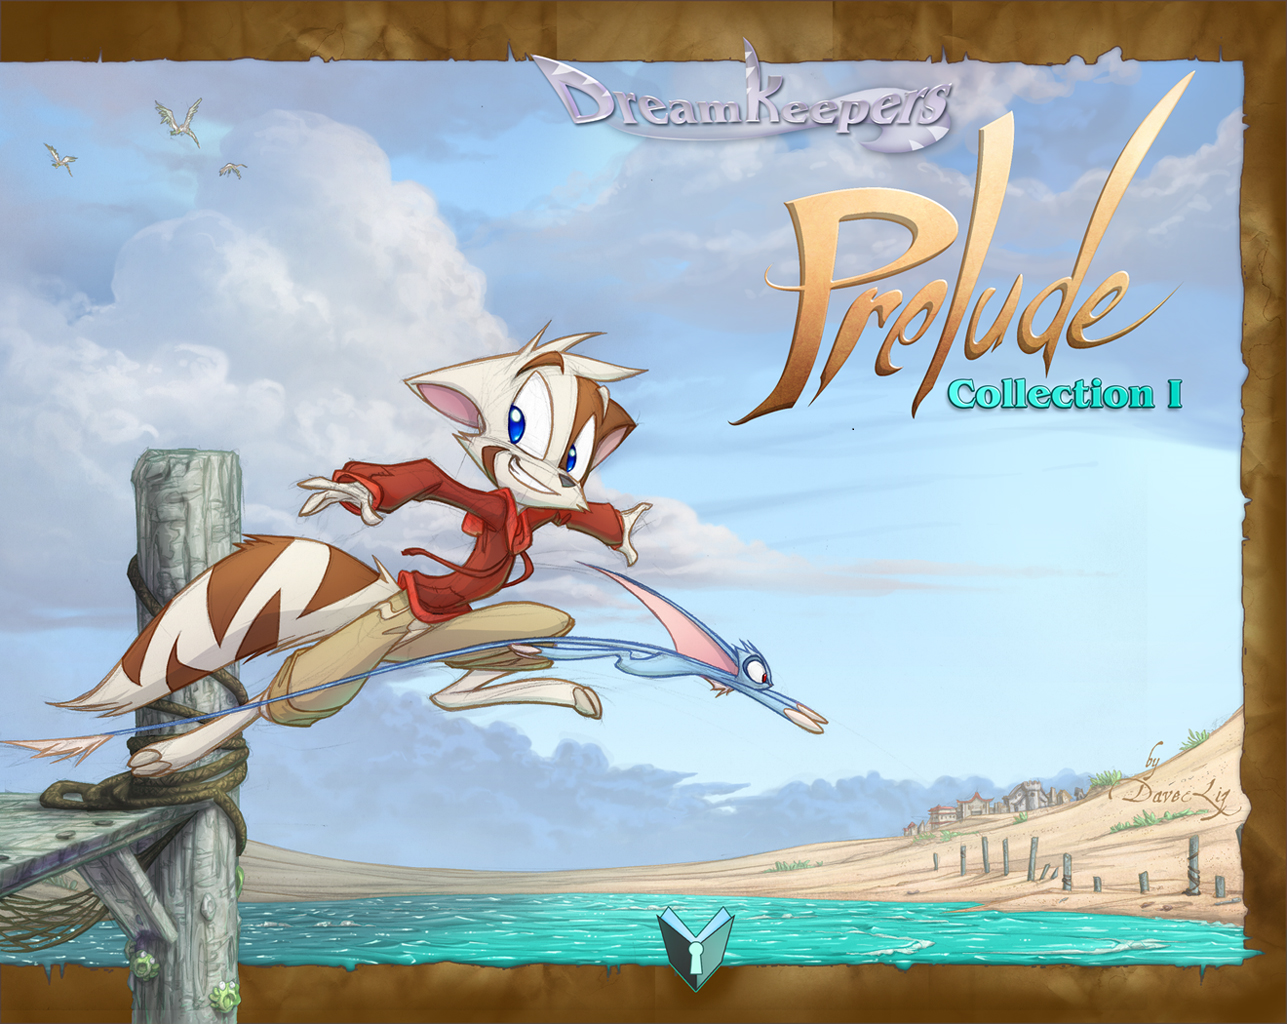 Prelude Collection 1 Front Cover